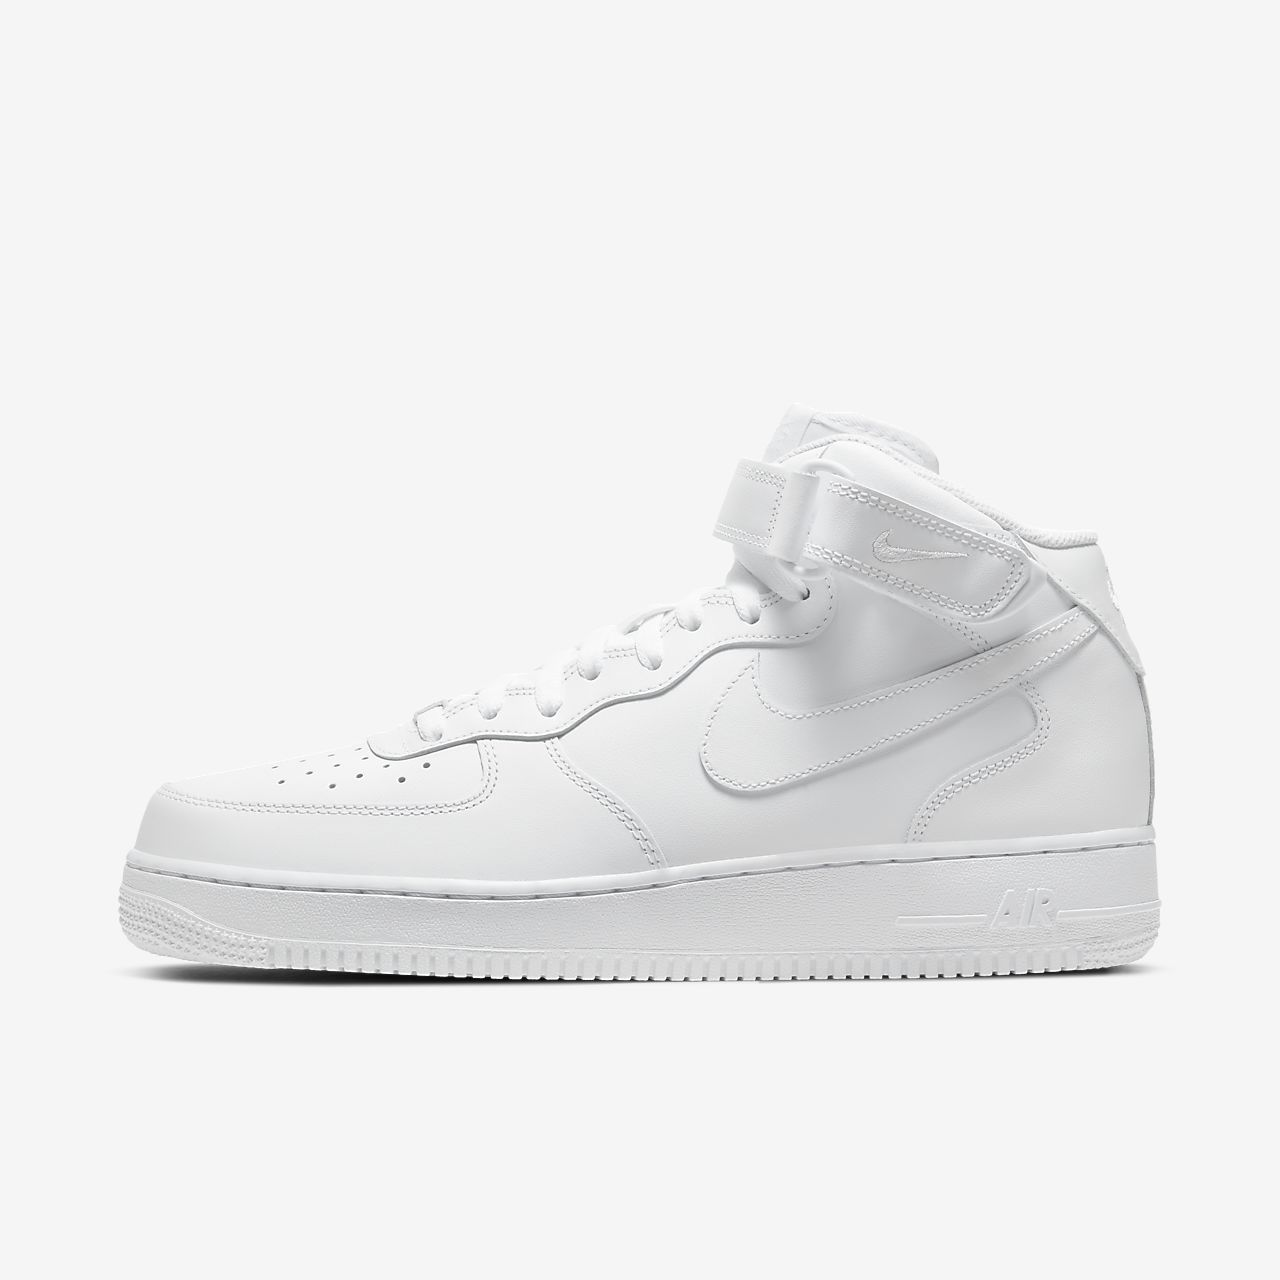 bas prix ad7a2 0264f Nike Air Force 1 Mid '07 Men's Shoe